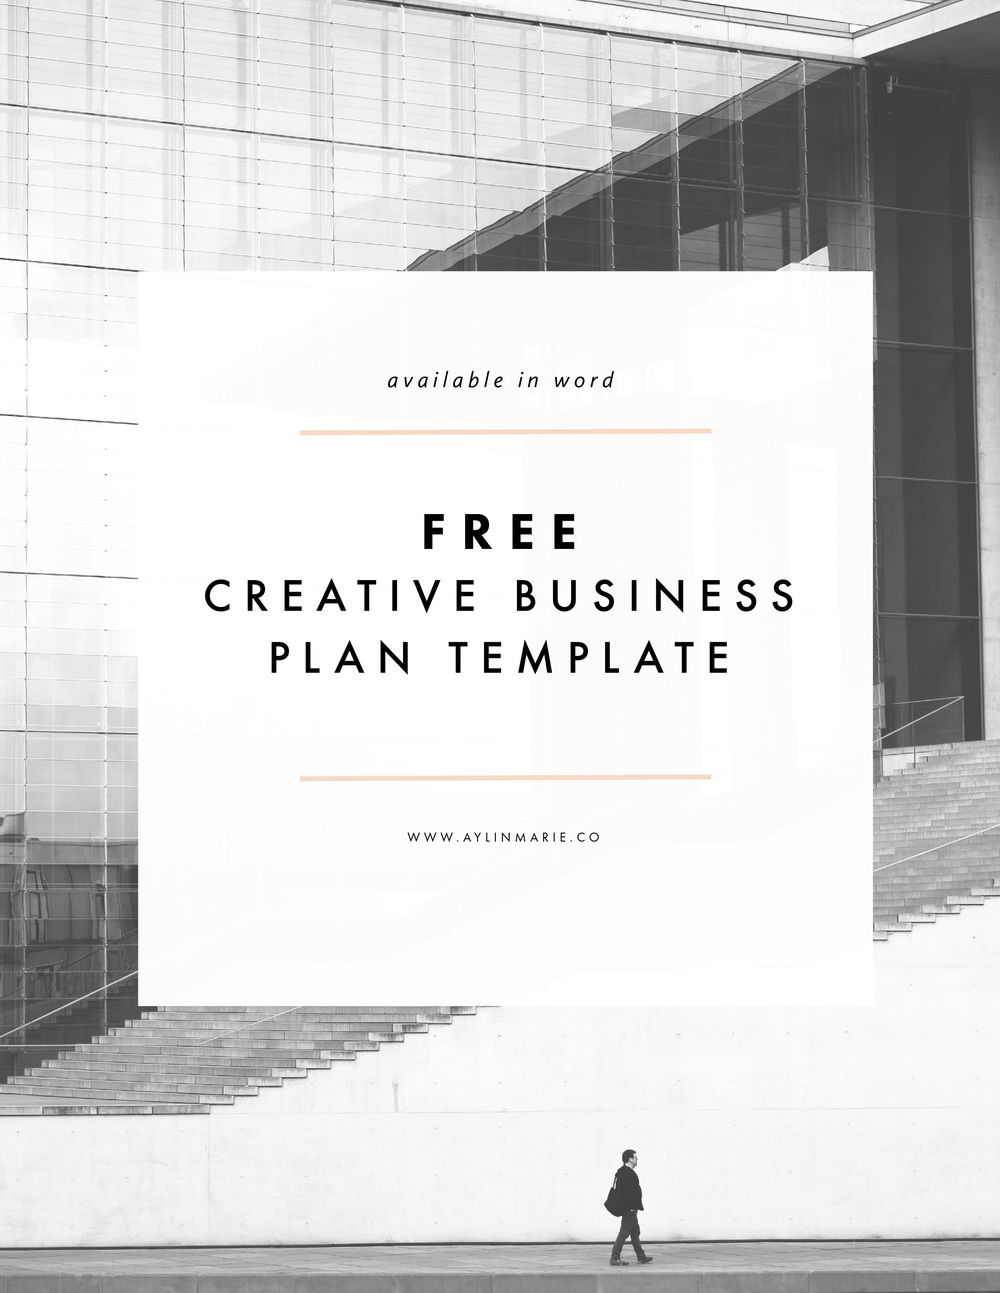 Freebie creative business plan template aylin marie freebie creative business plan template cheaphphosting Image collections